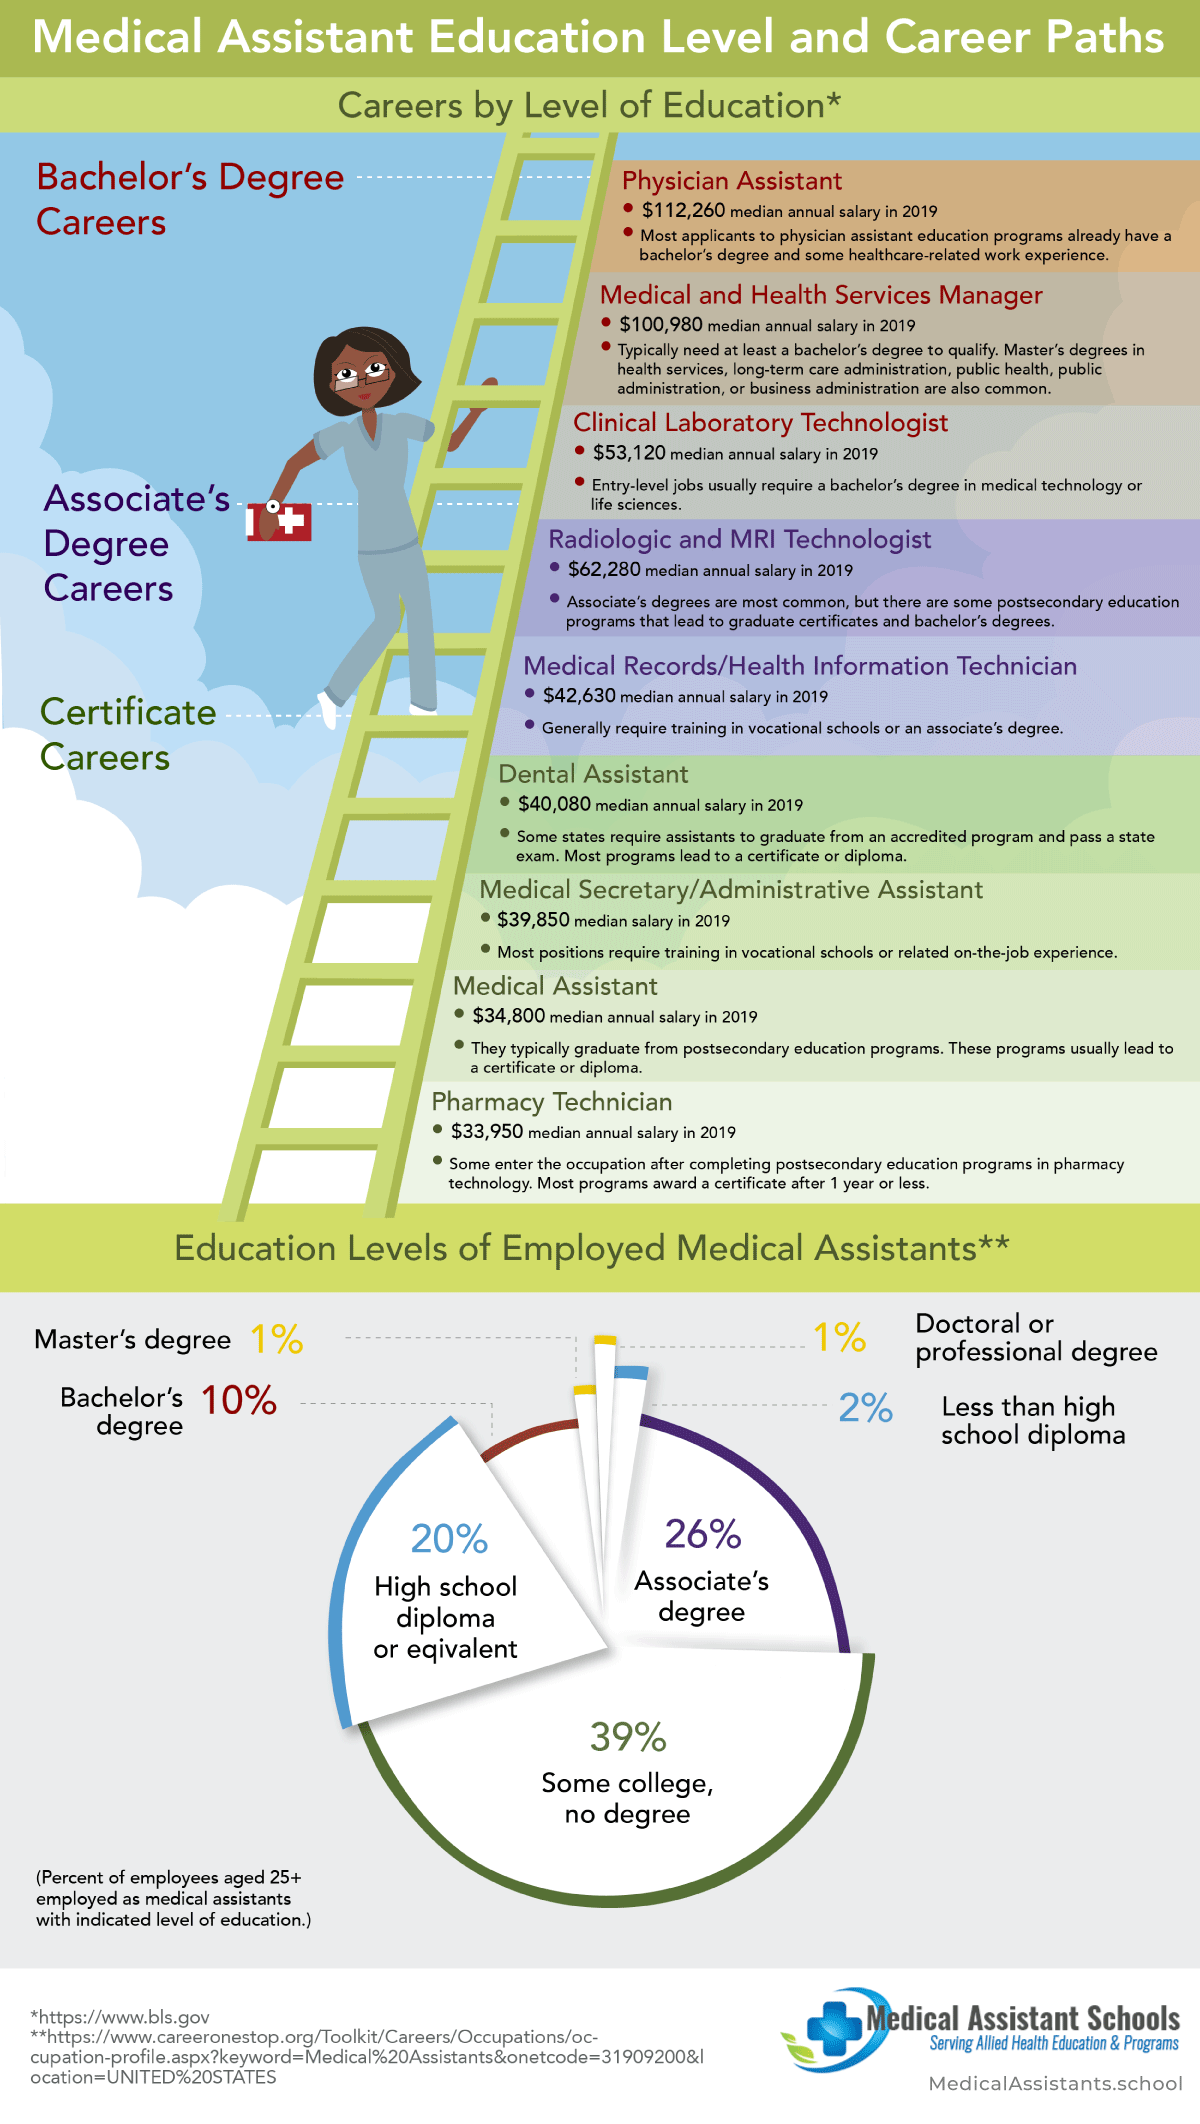 Medical Assistant Education Levels and Career Paths